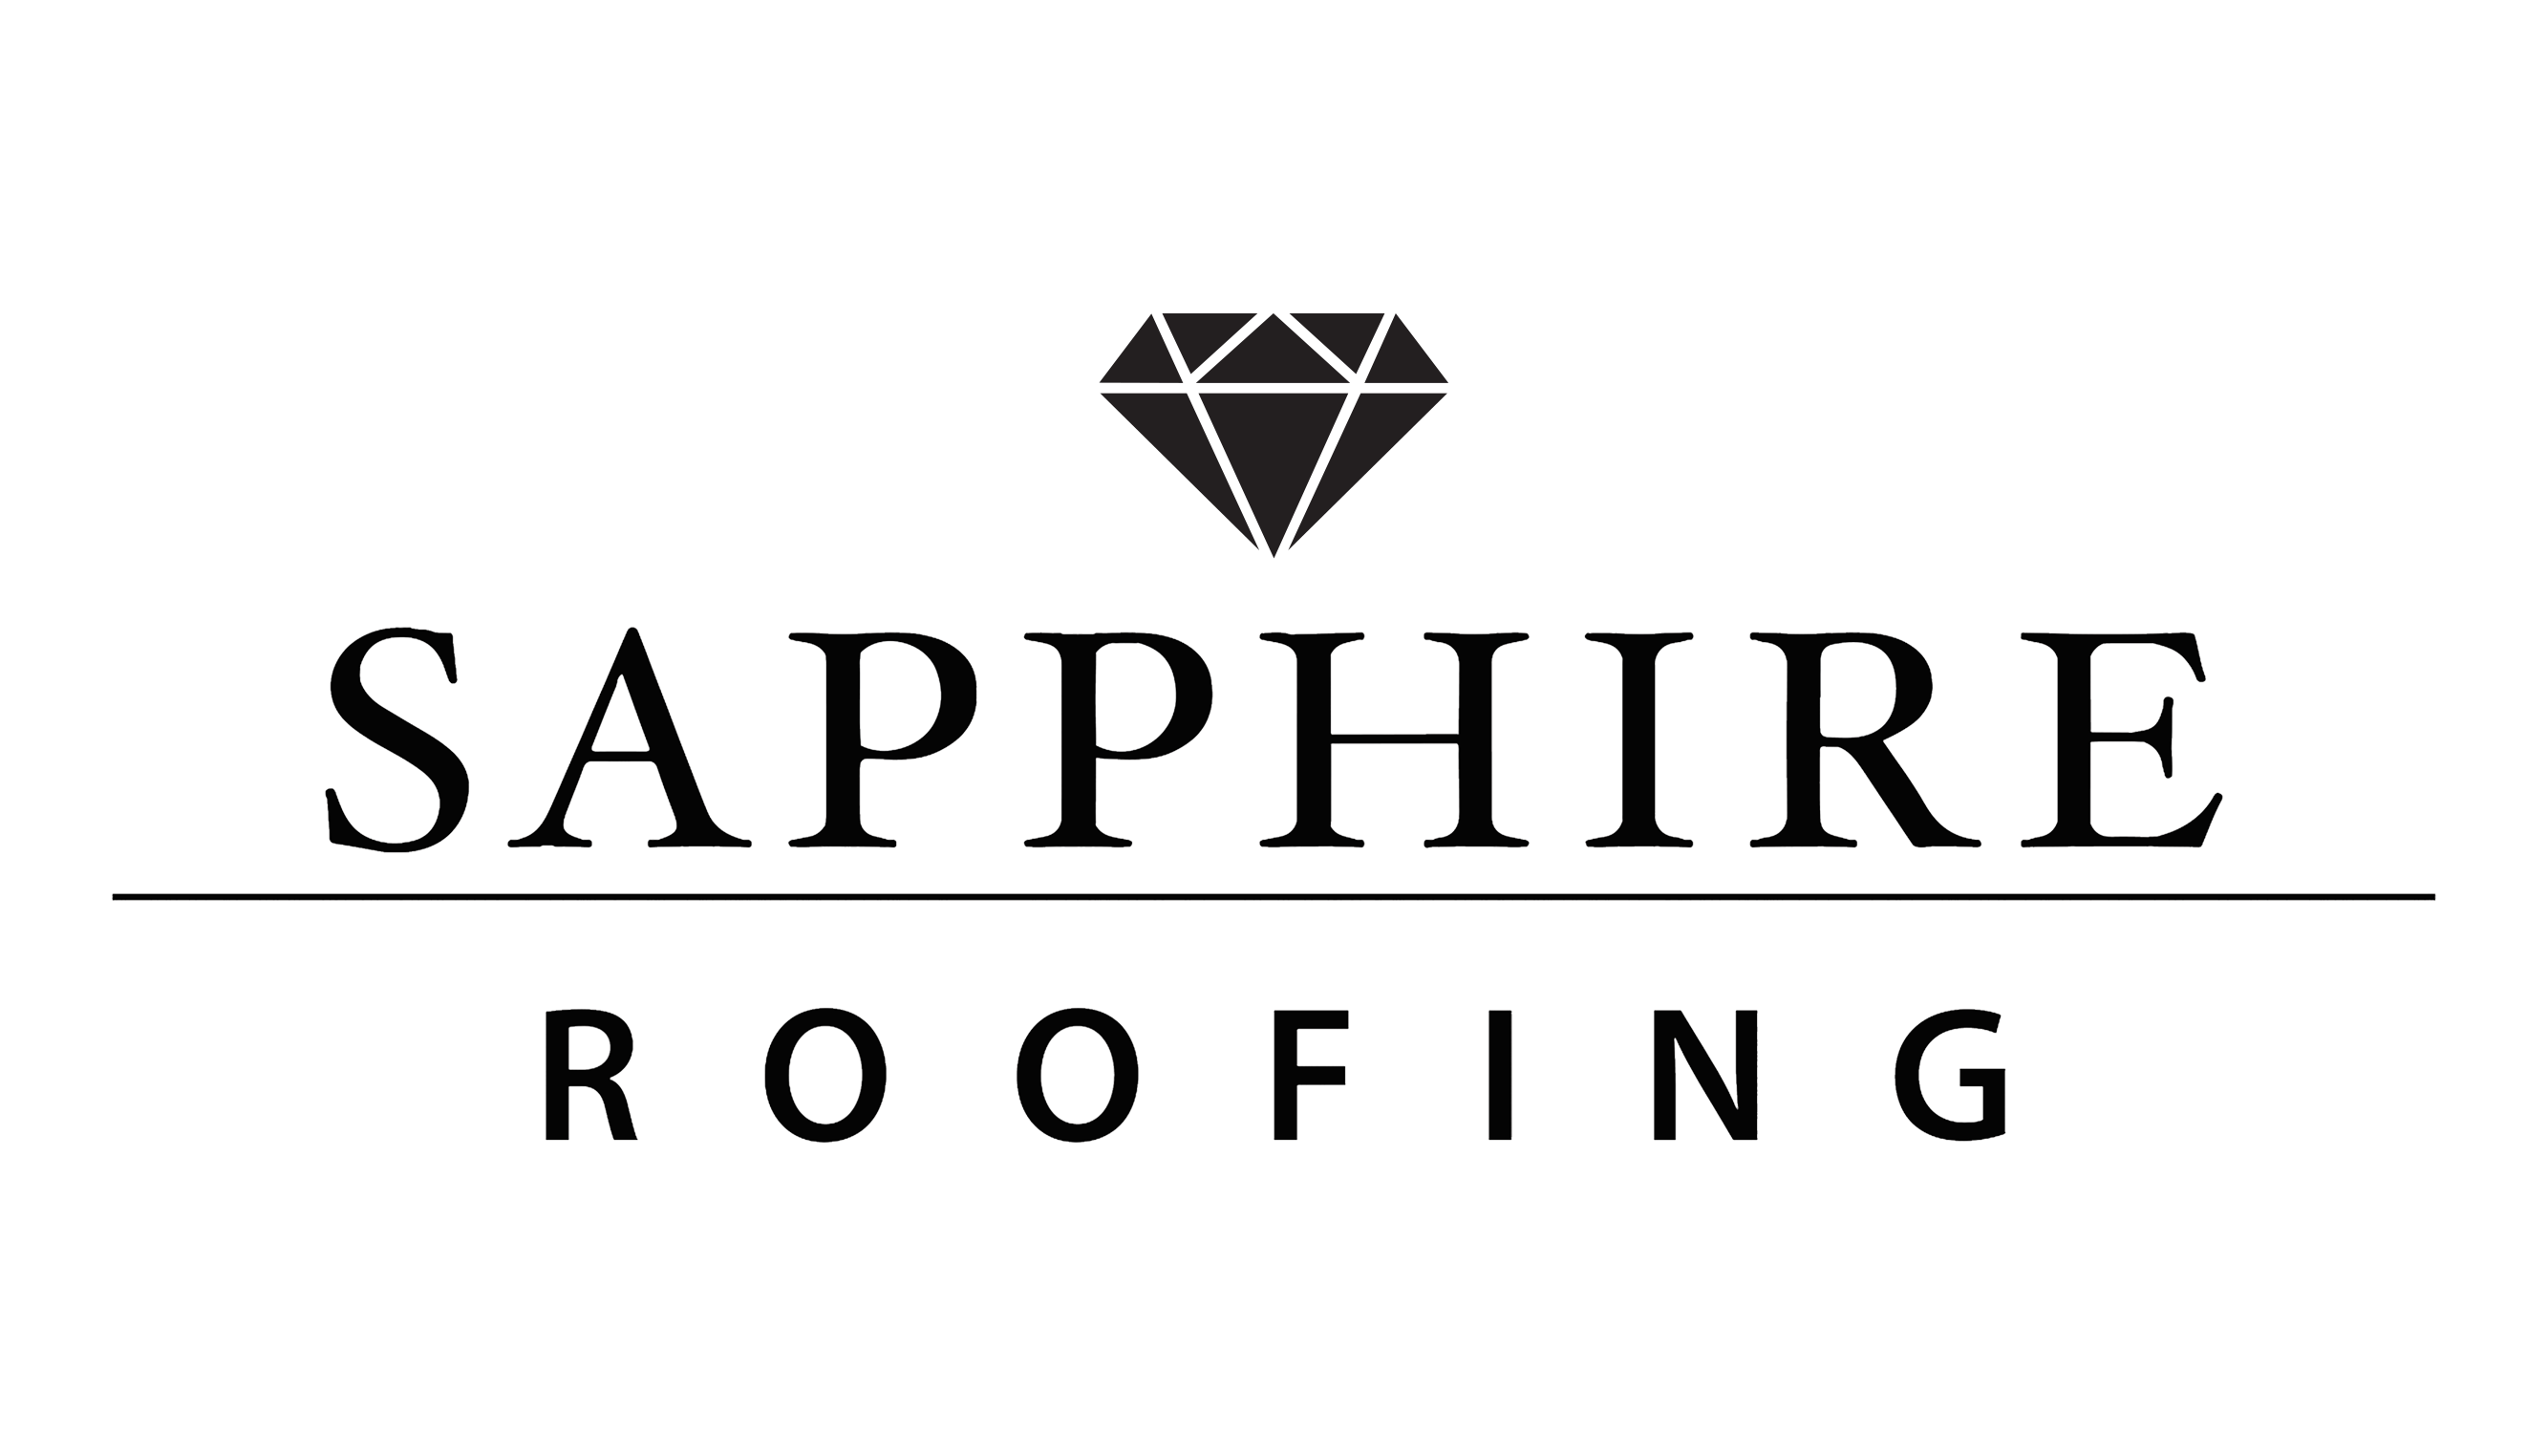 sapphire roofing logo